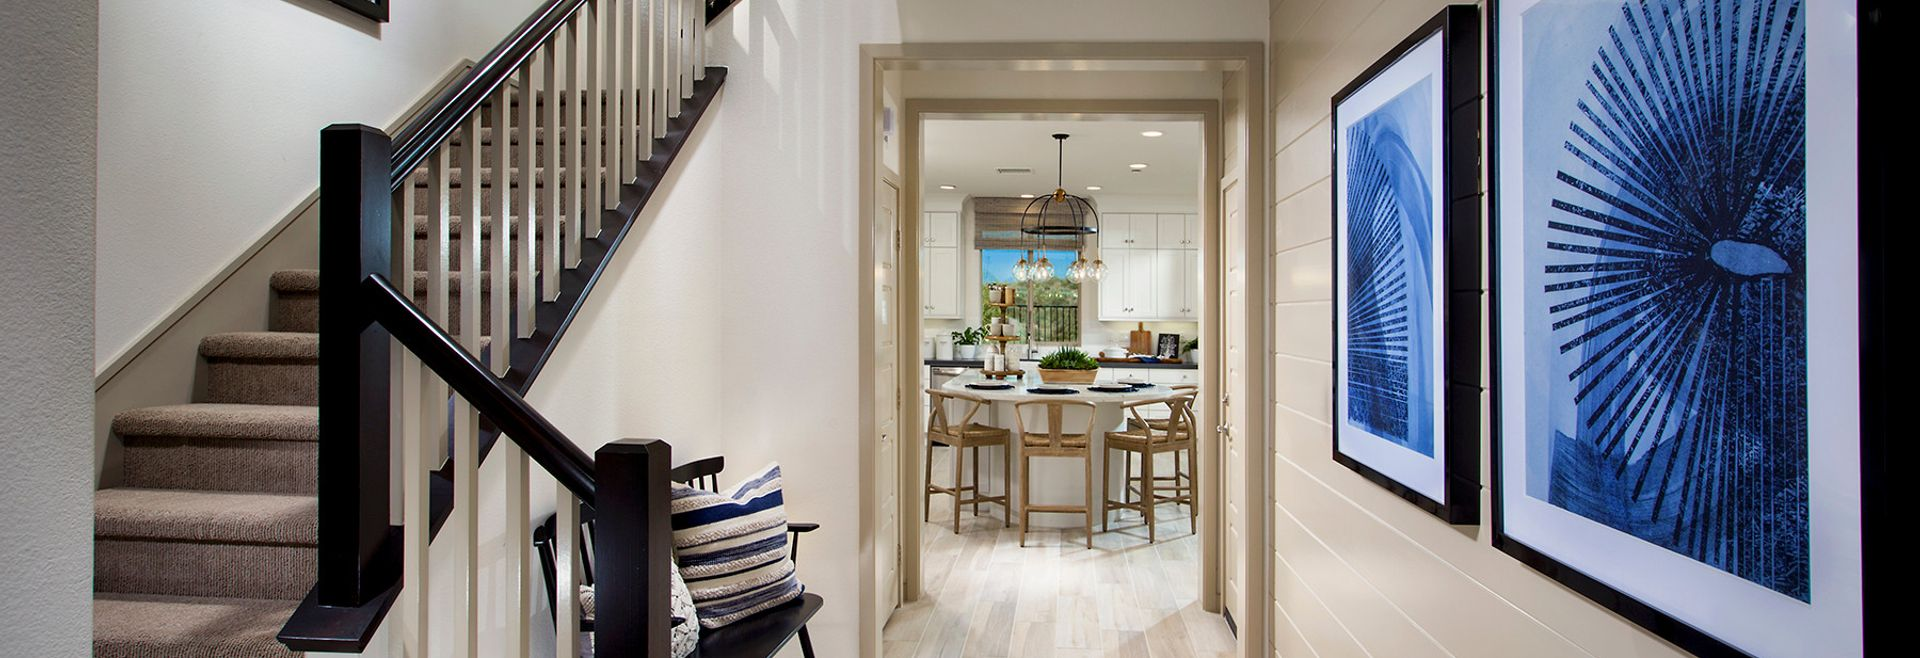 Entryway with art work and bench at Bristol at Baker Ranch by Shea Homes